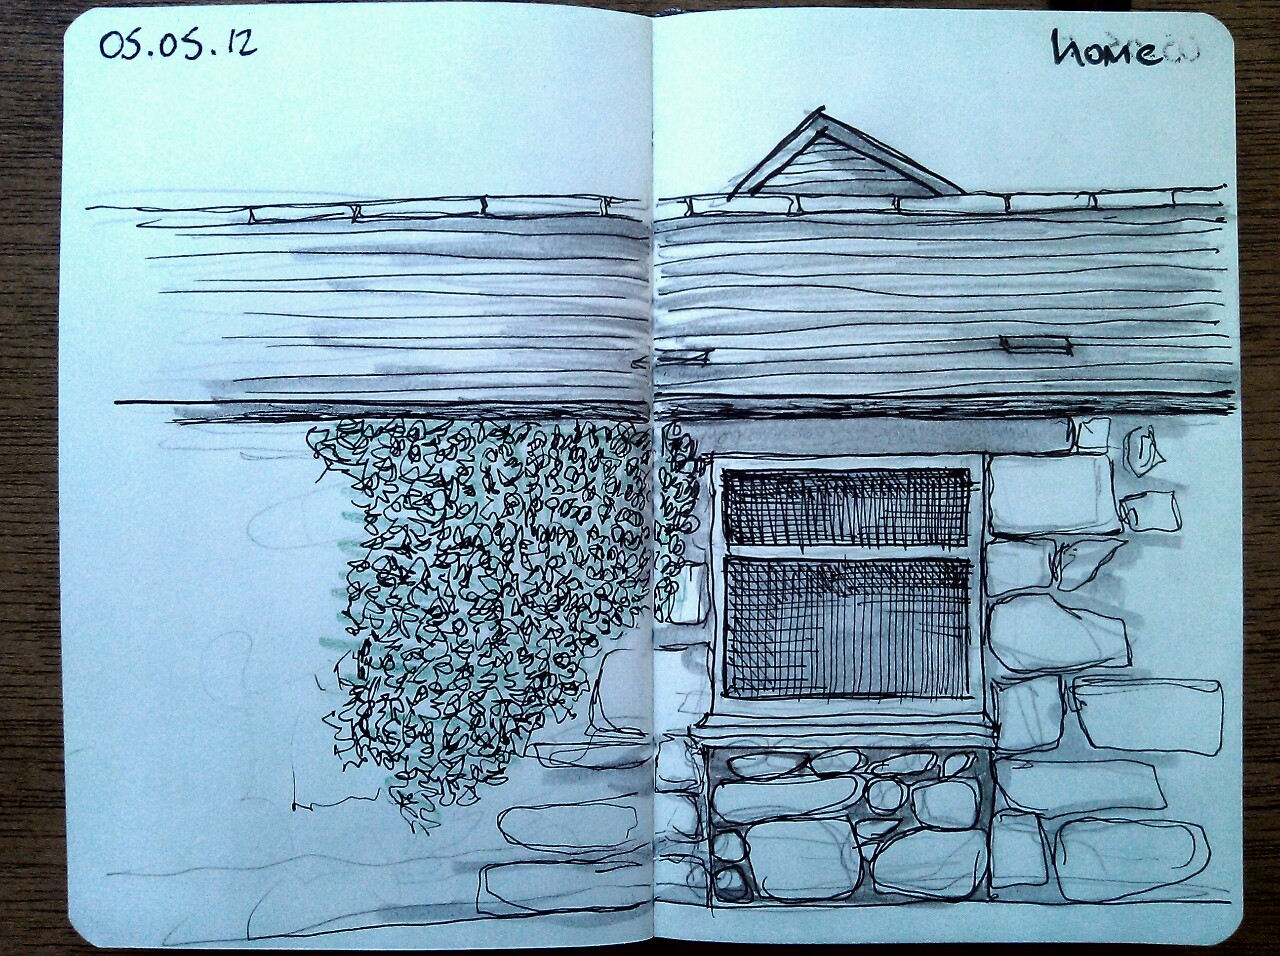 365 drawings later … day 95 … home